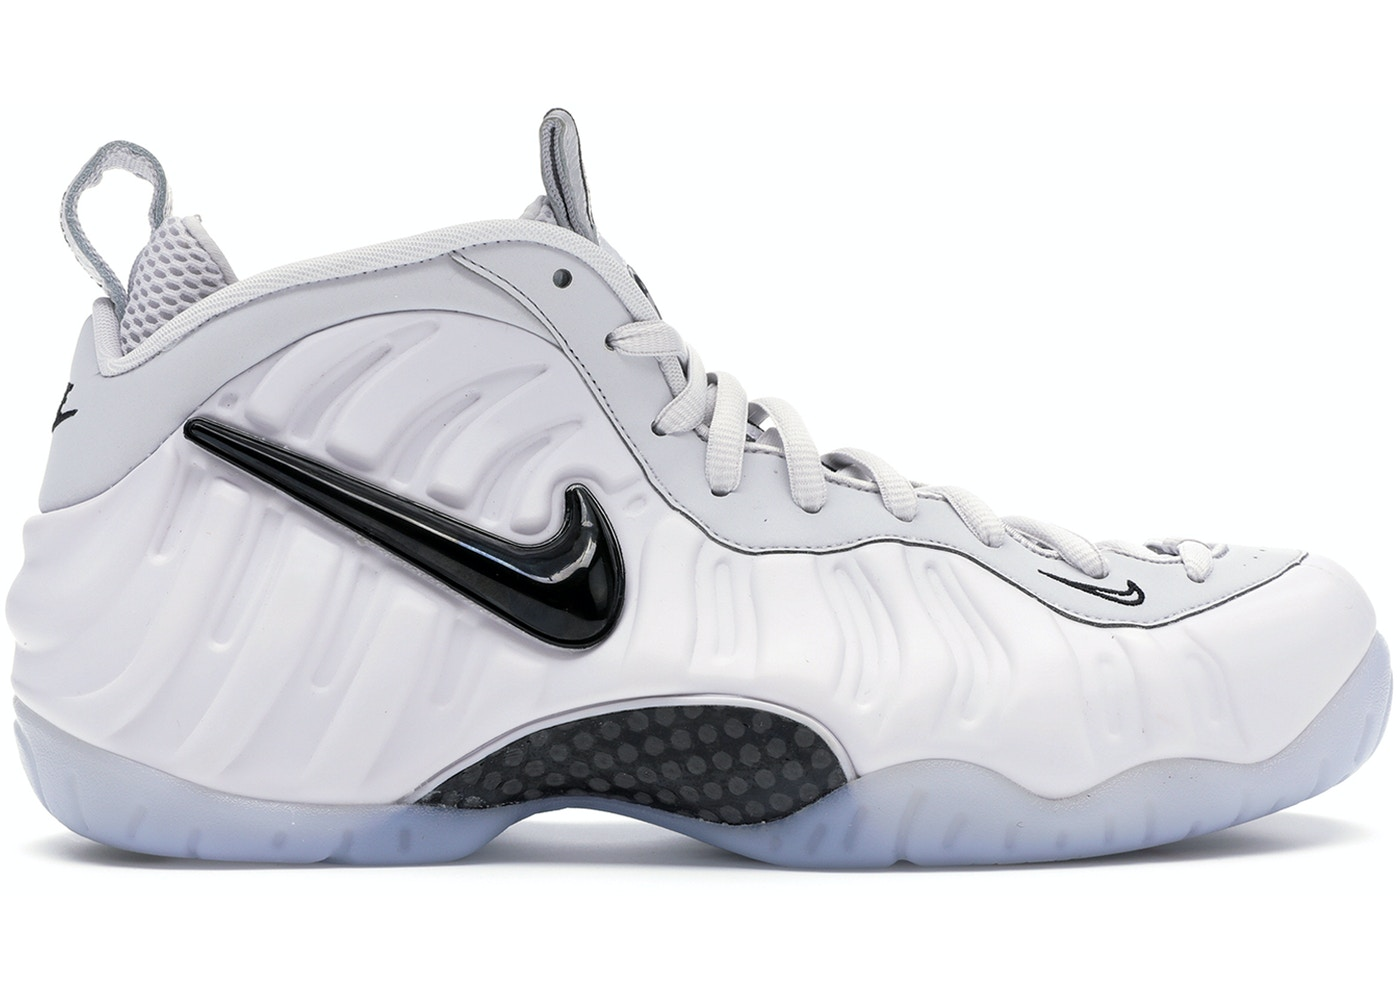 wholesale dealer 0aea3 7119e Air Foamposite Pro All-Star (2018) - AO0817-001